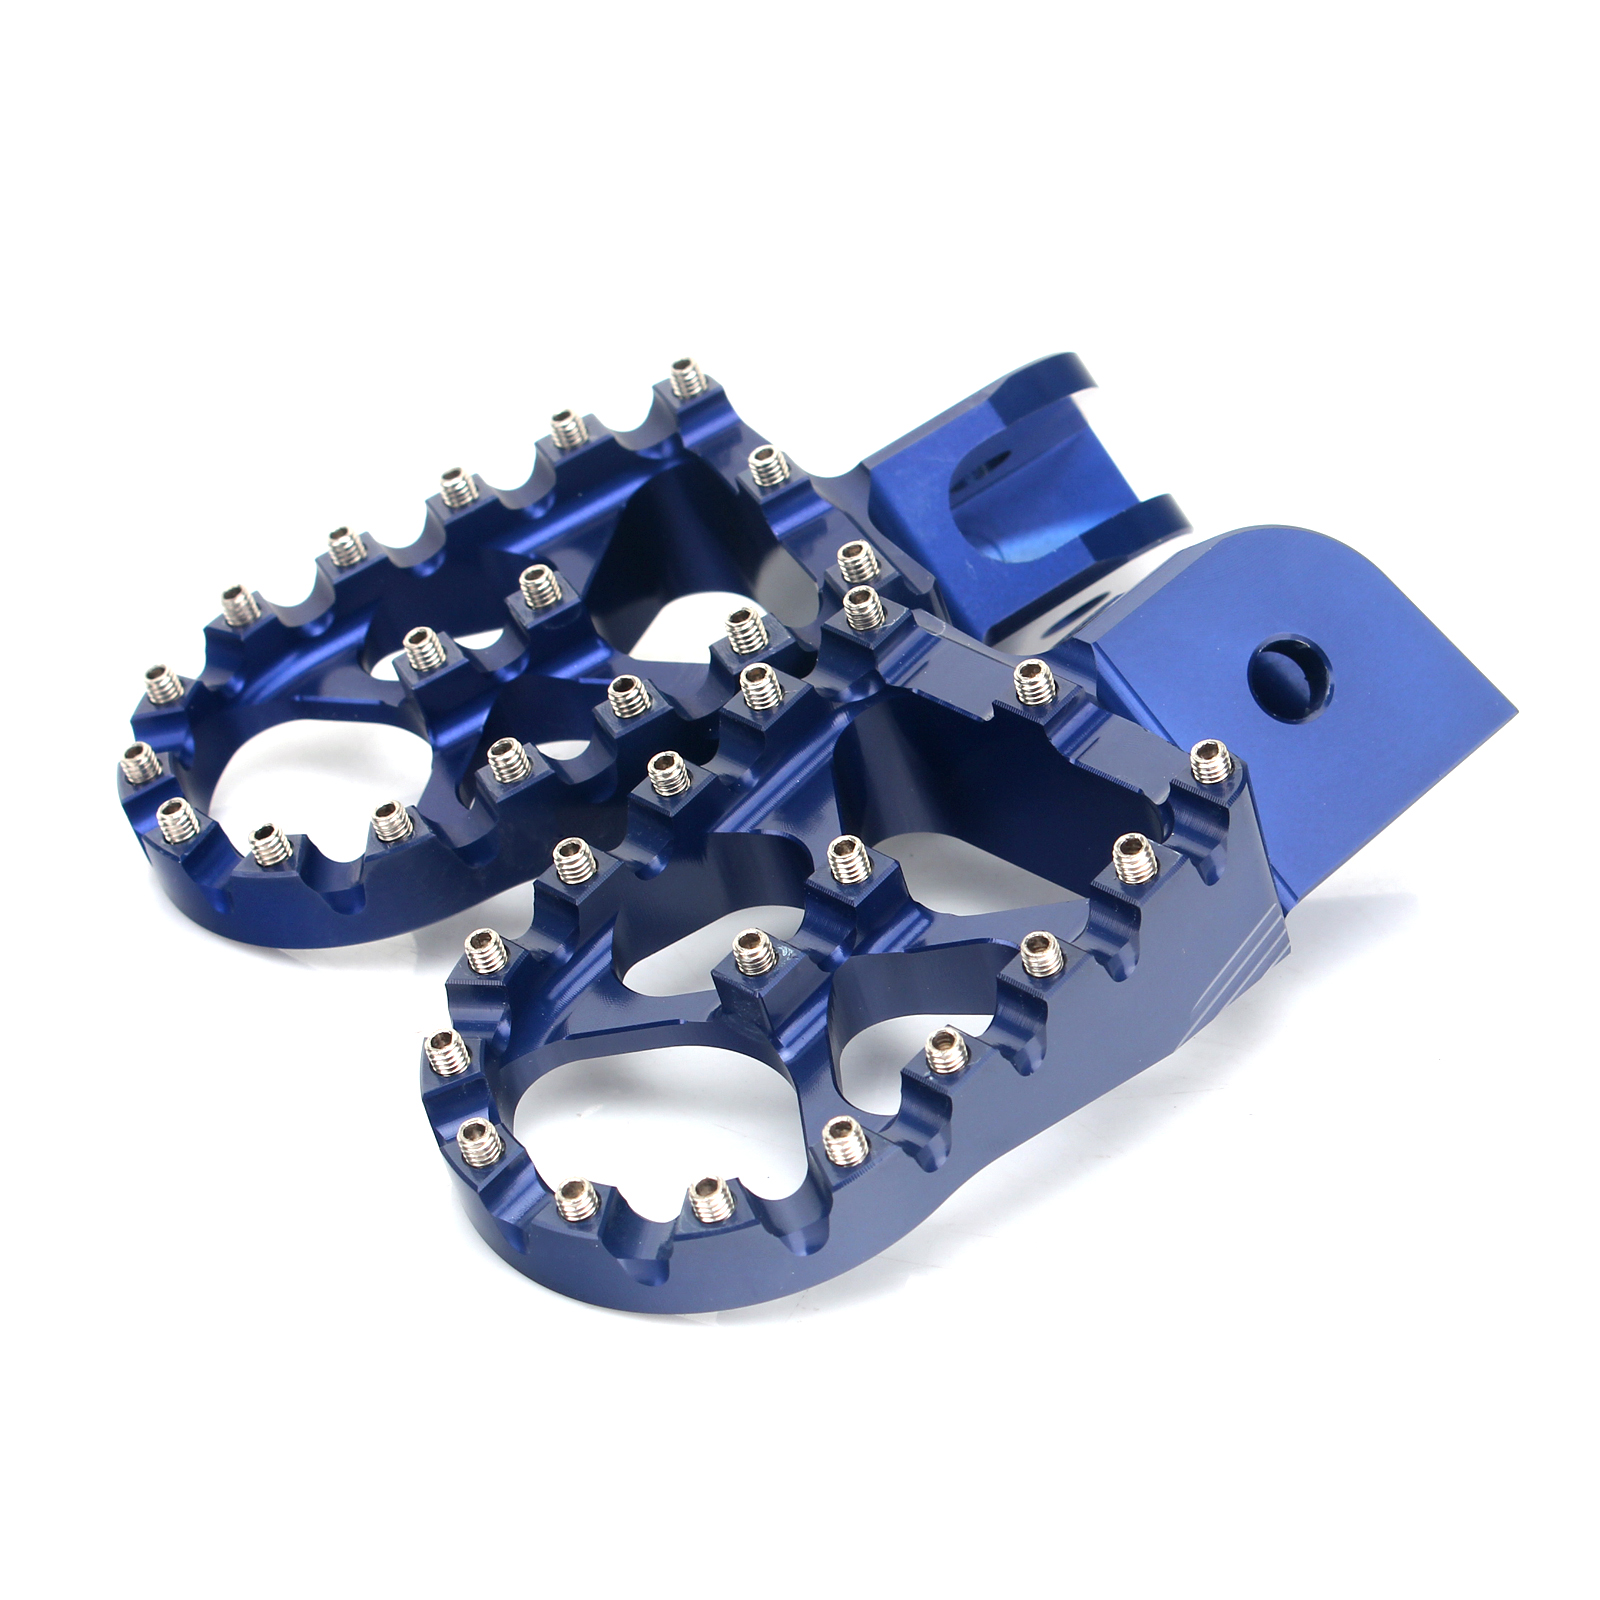 Blue Footpegs Foot Pegs for BMW F650GS 00-12 F800GS 08-13 R1200GS 04-12 F700